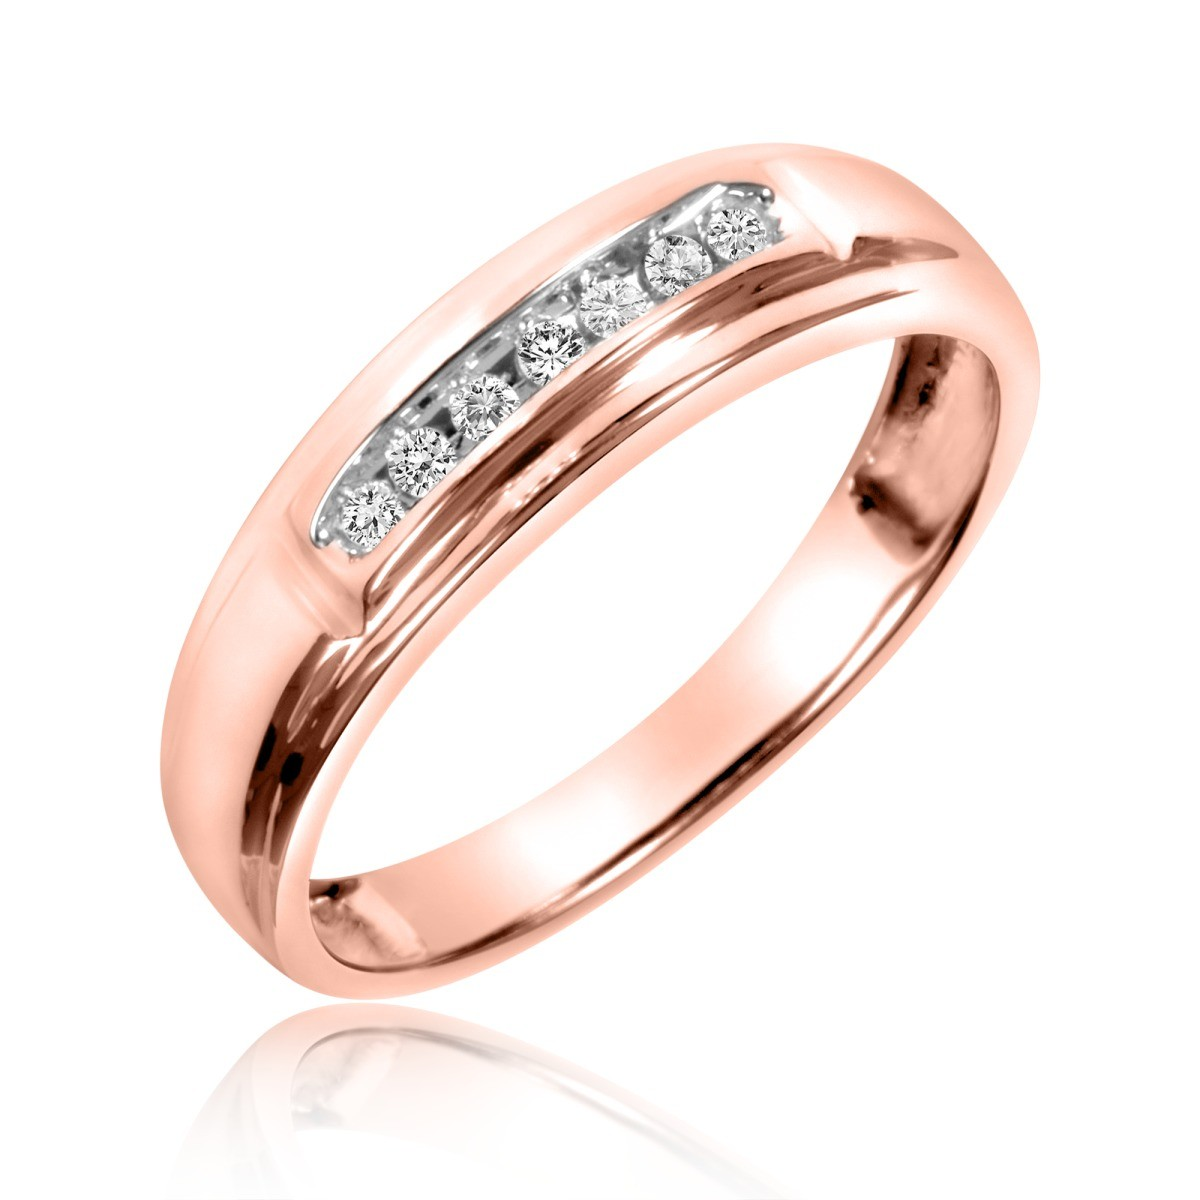 1/20 Carat T.W. Diamond Ladies' Wedding Band 10K Rose Gold